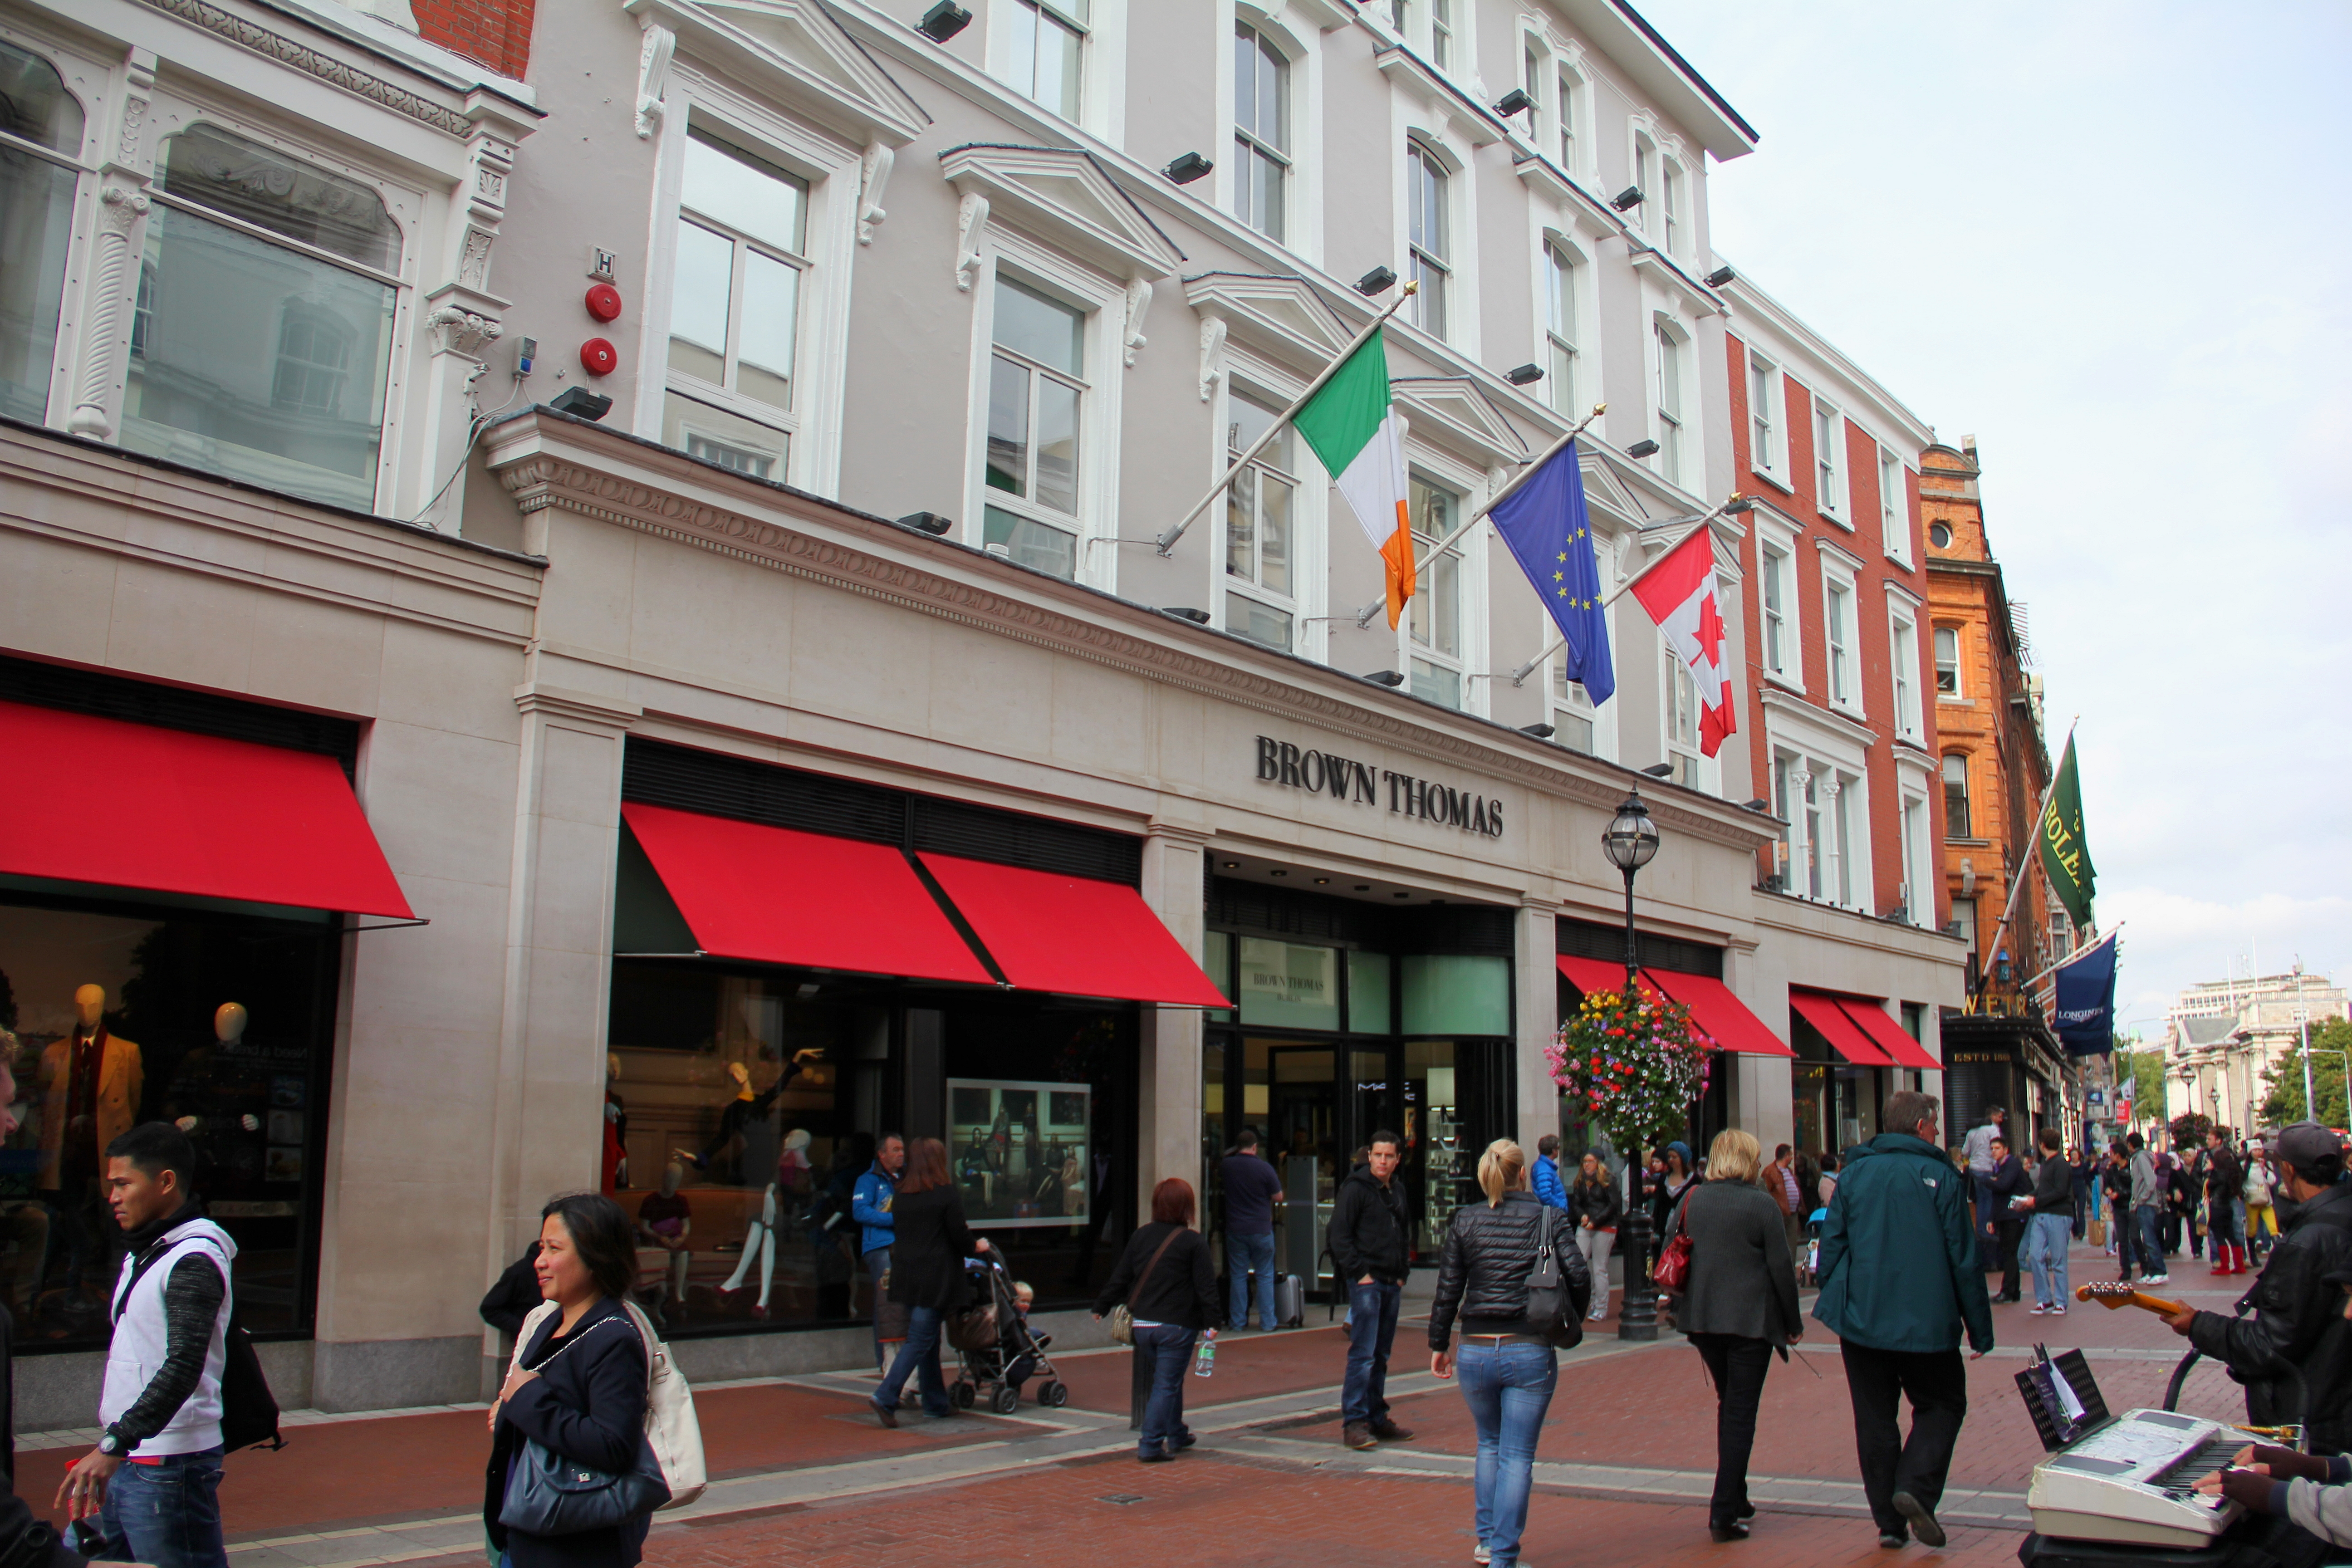 Description dublin grafton street brown thomas 02 jpg